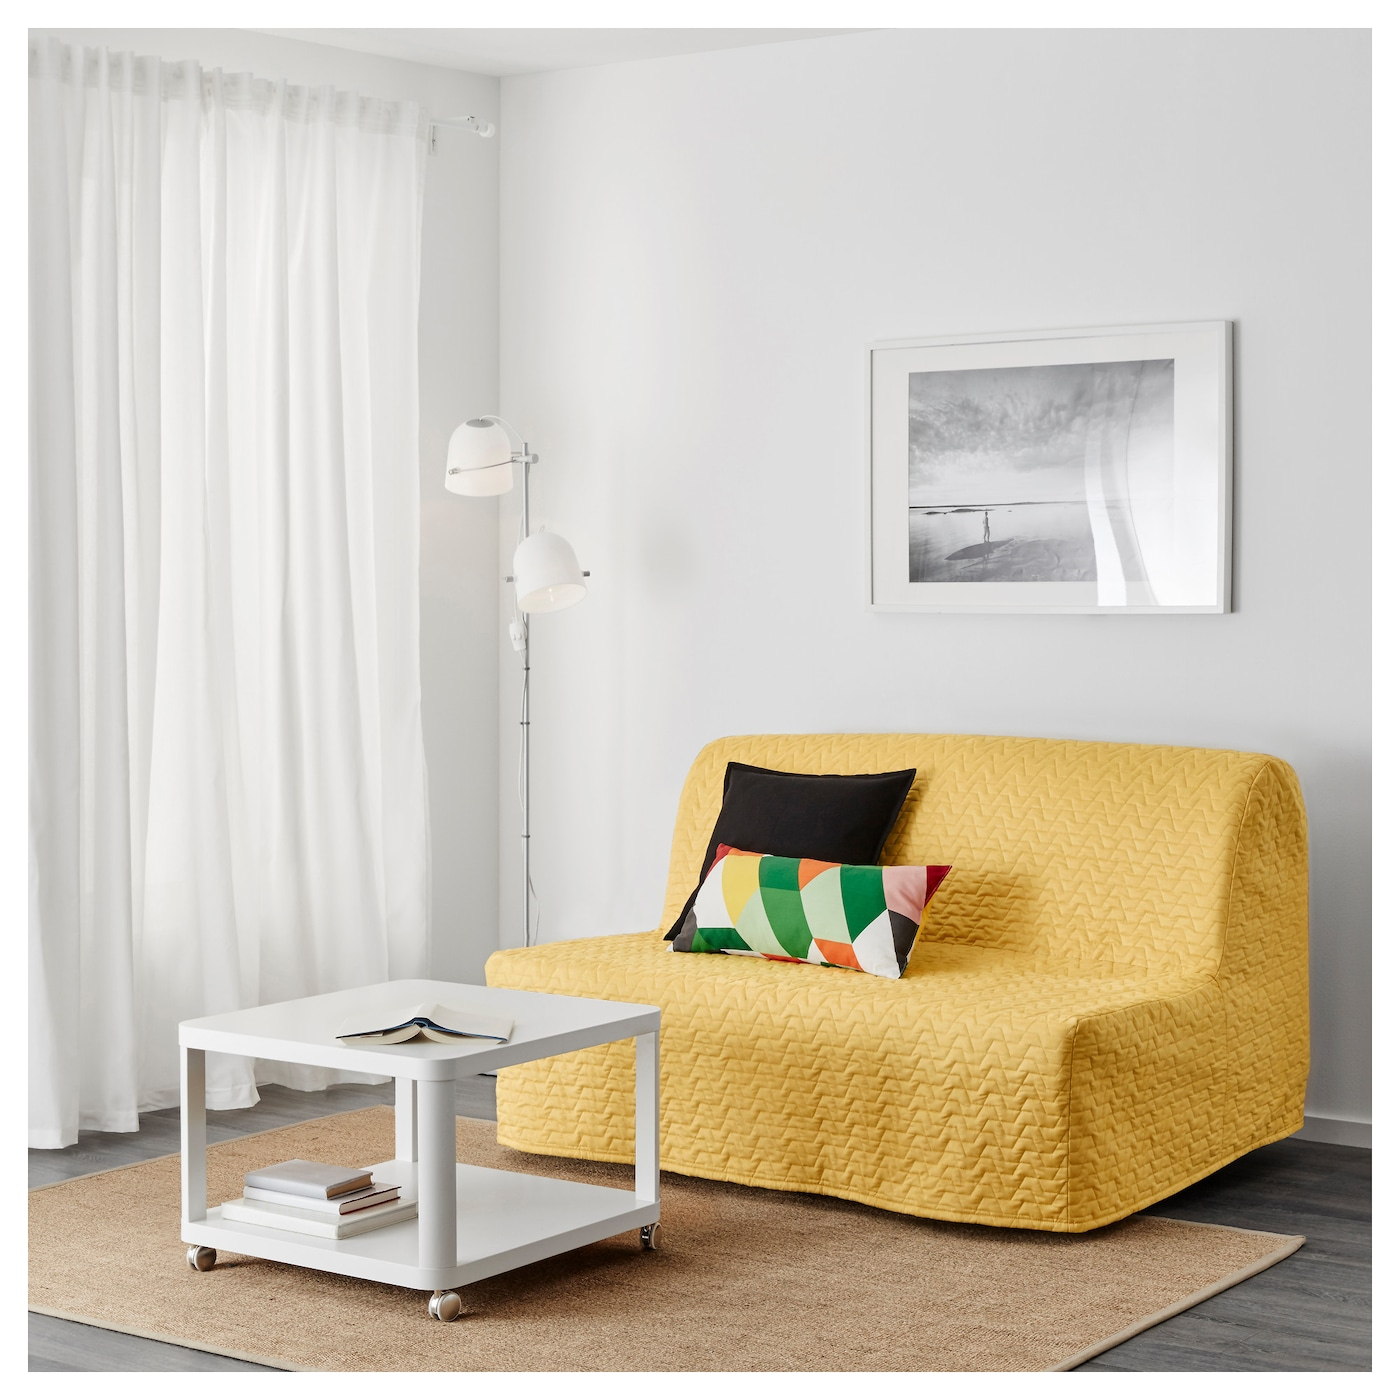 lycksele murbo two seat sofa bed vallarum yellow ikea. Black Bedroom Furniture Sets. Home Design Ideas